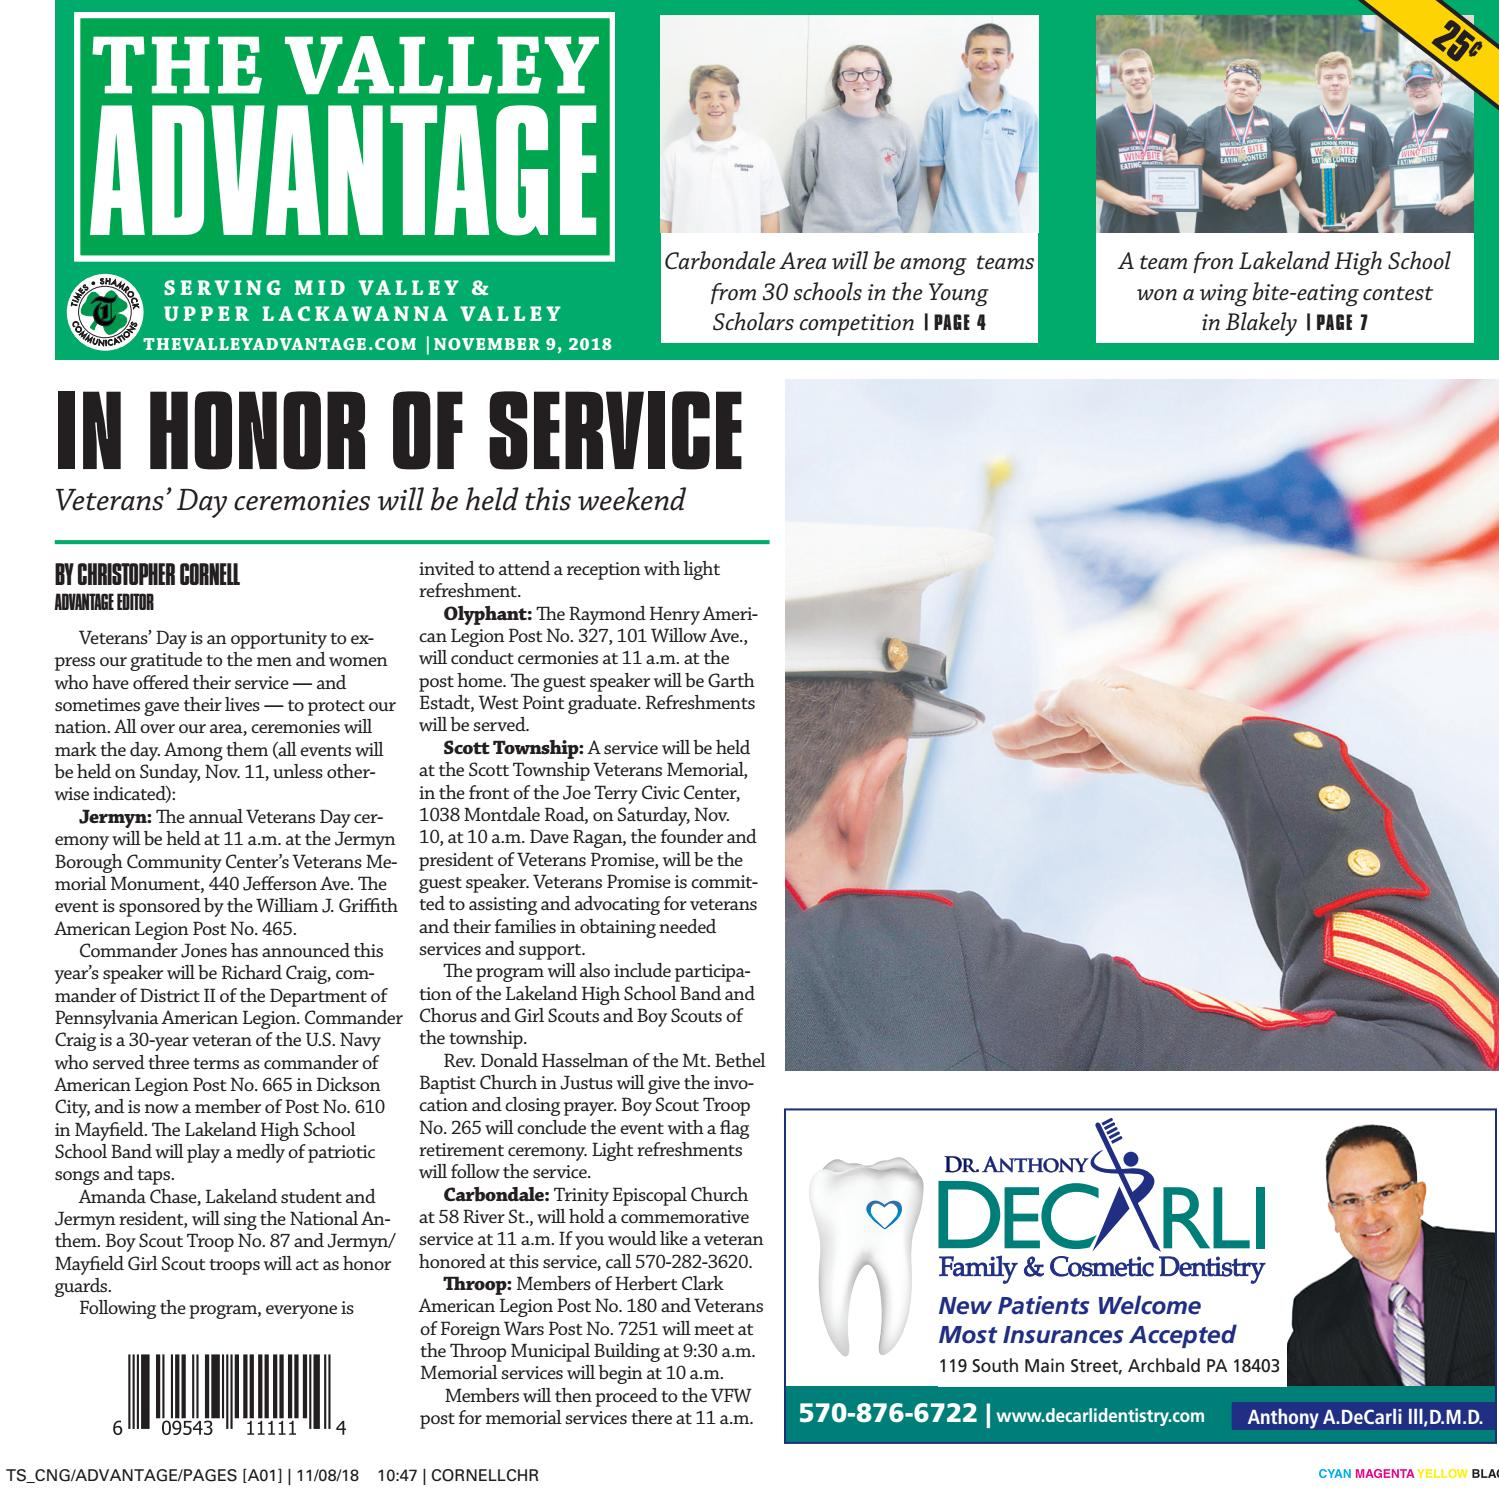 The Valley Advantage--11-09-18 by CNG Newspaper Group - issuu